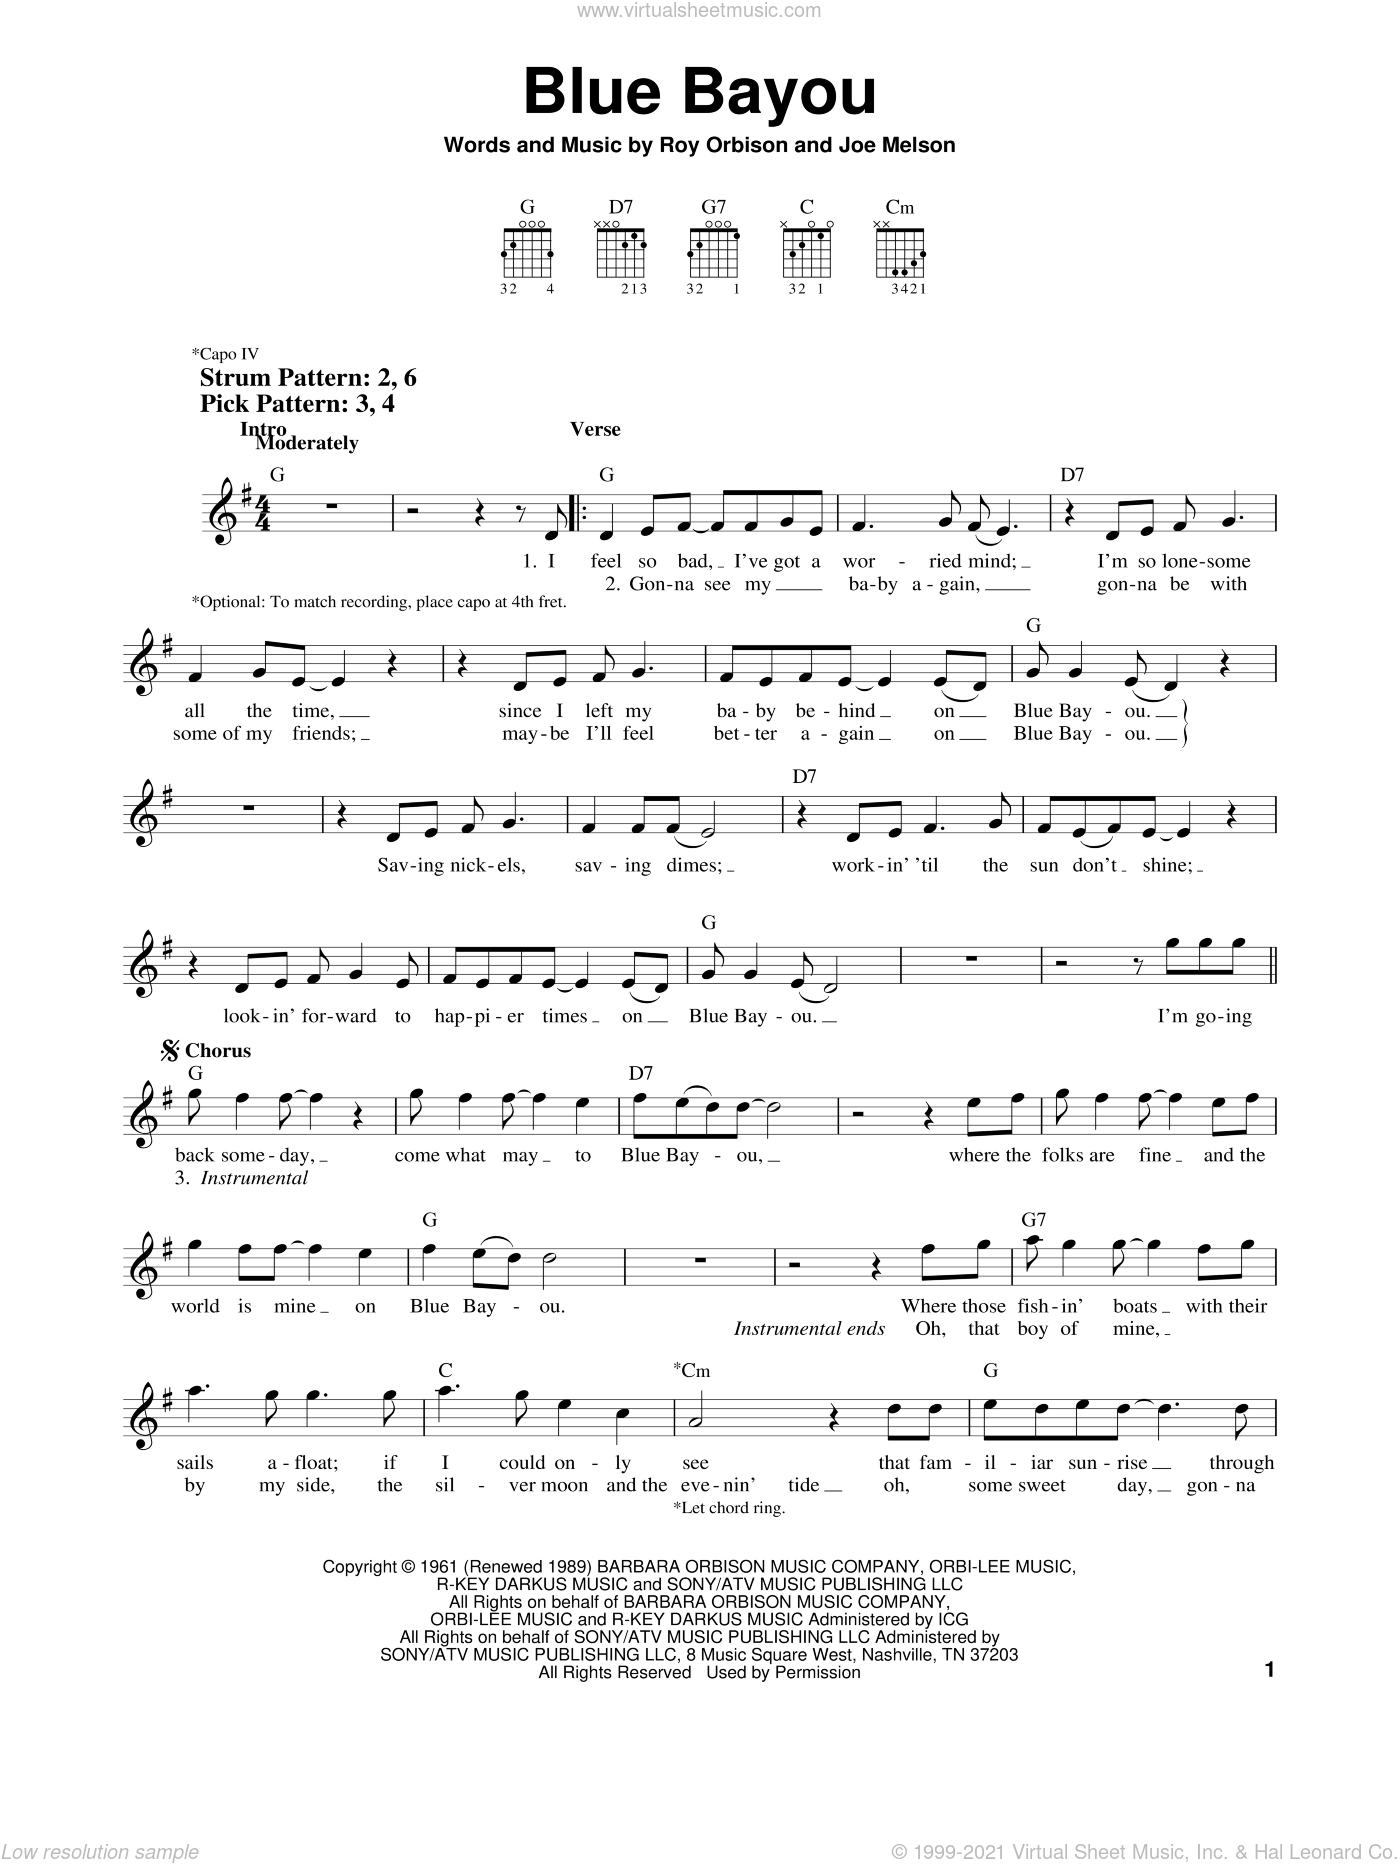 Blue Bayou sheet music for guitar solo (chords) by Linda Ronstadt, Joe Melson and Roy Orbison, easy guitar (chords)